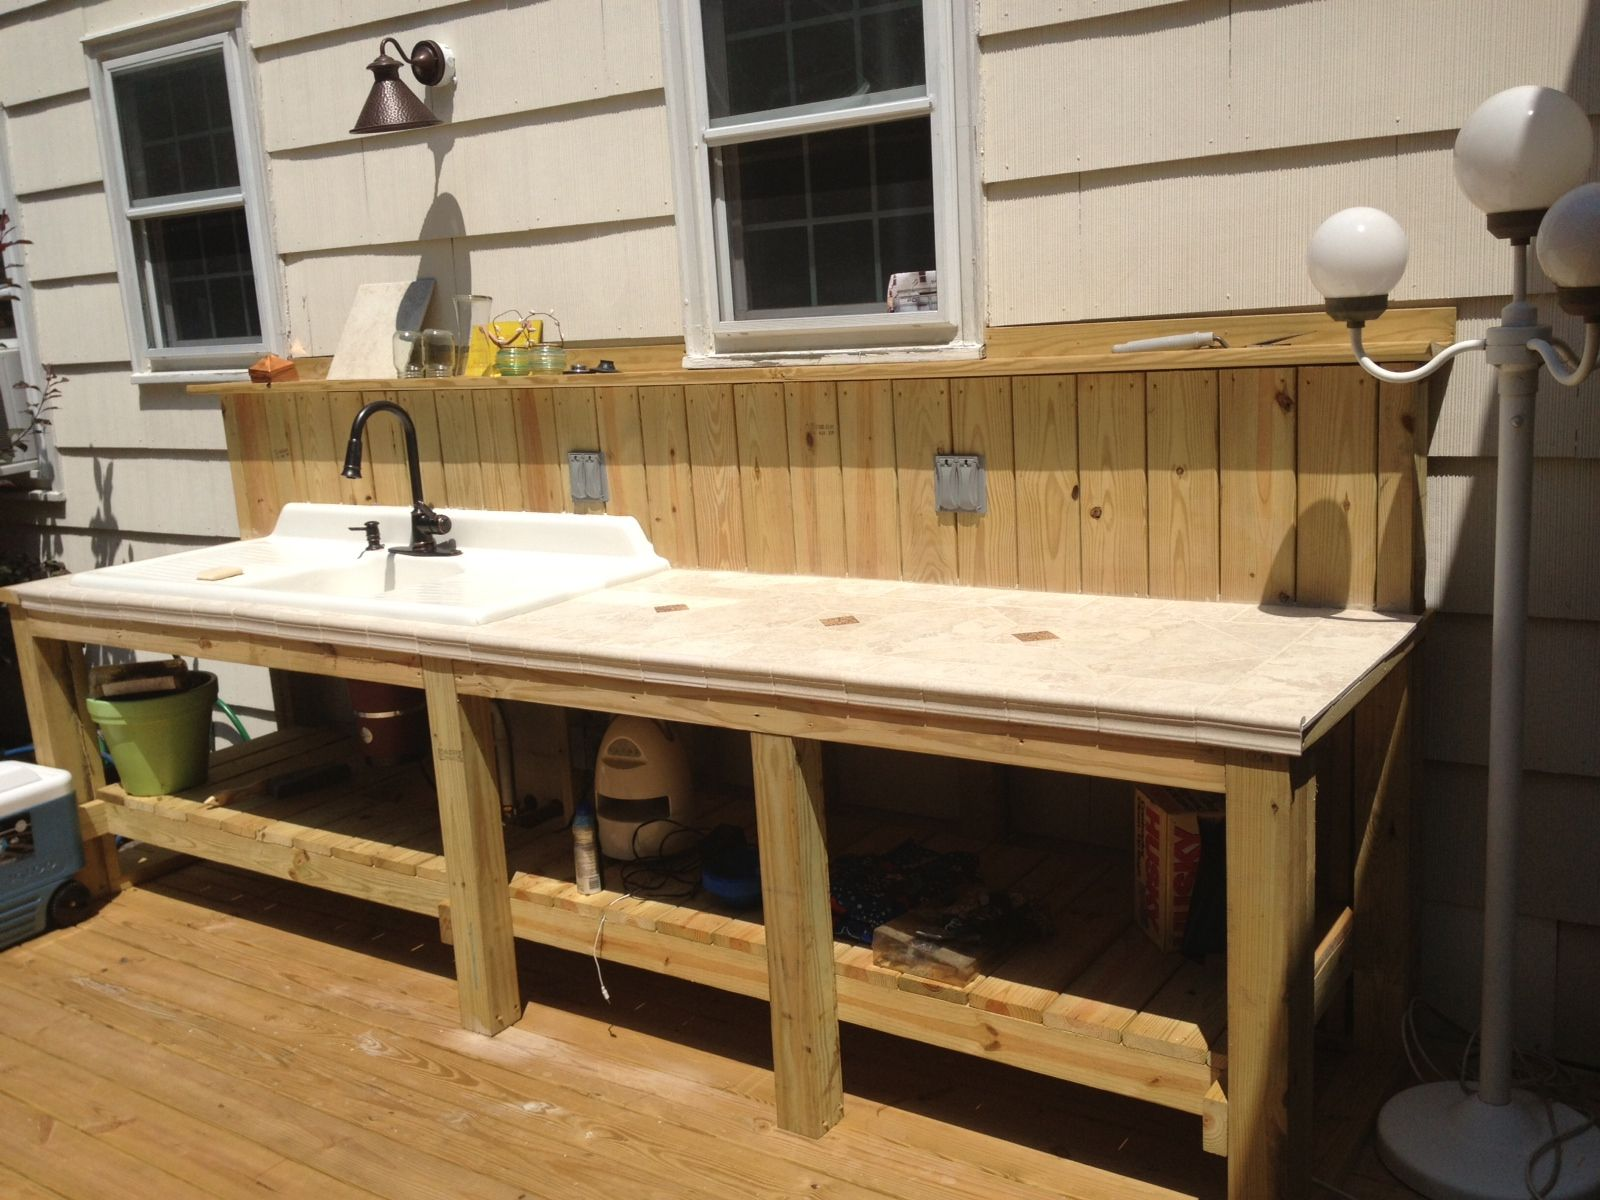 Outdoor Sink And Countertop Area Complete With Garbage Disposal